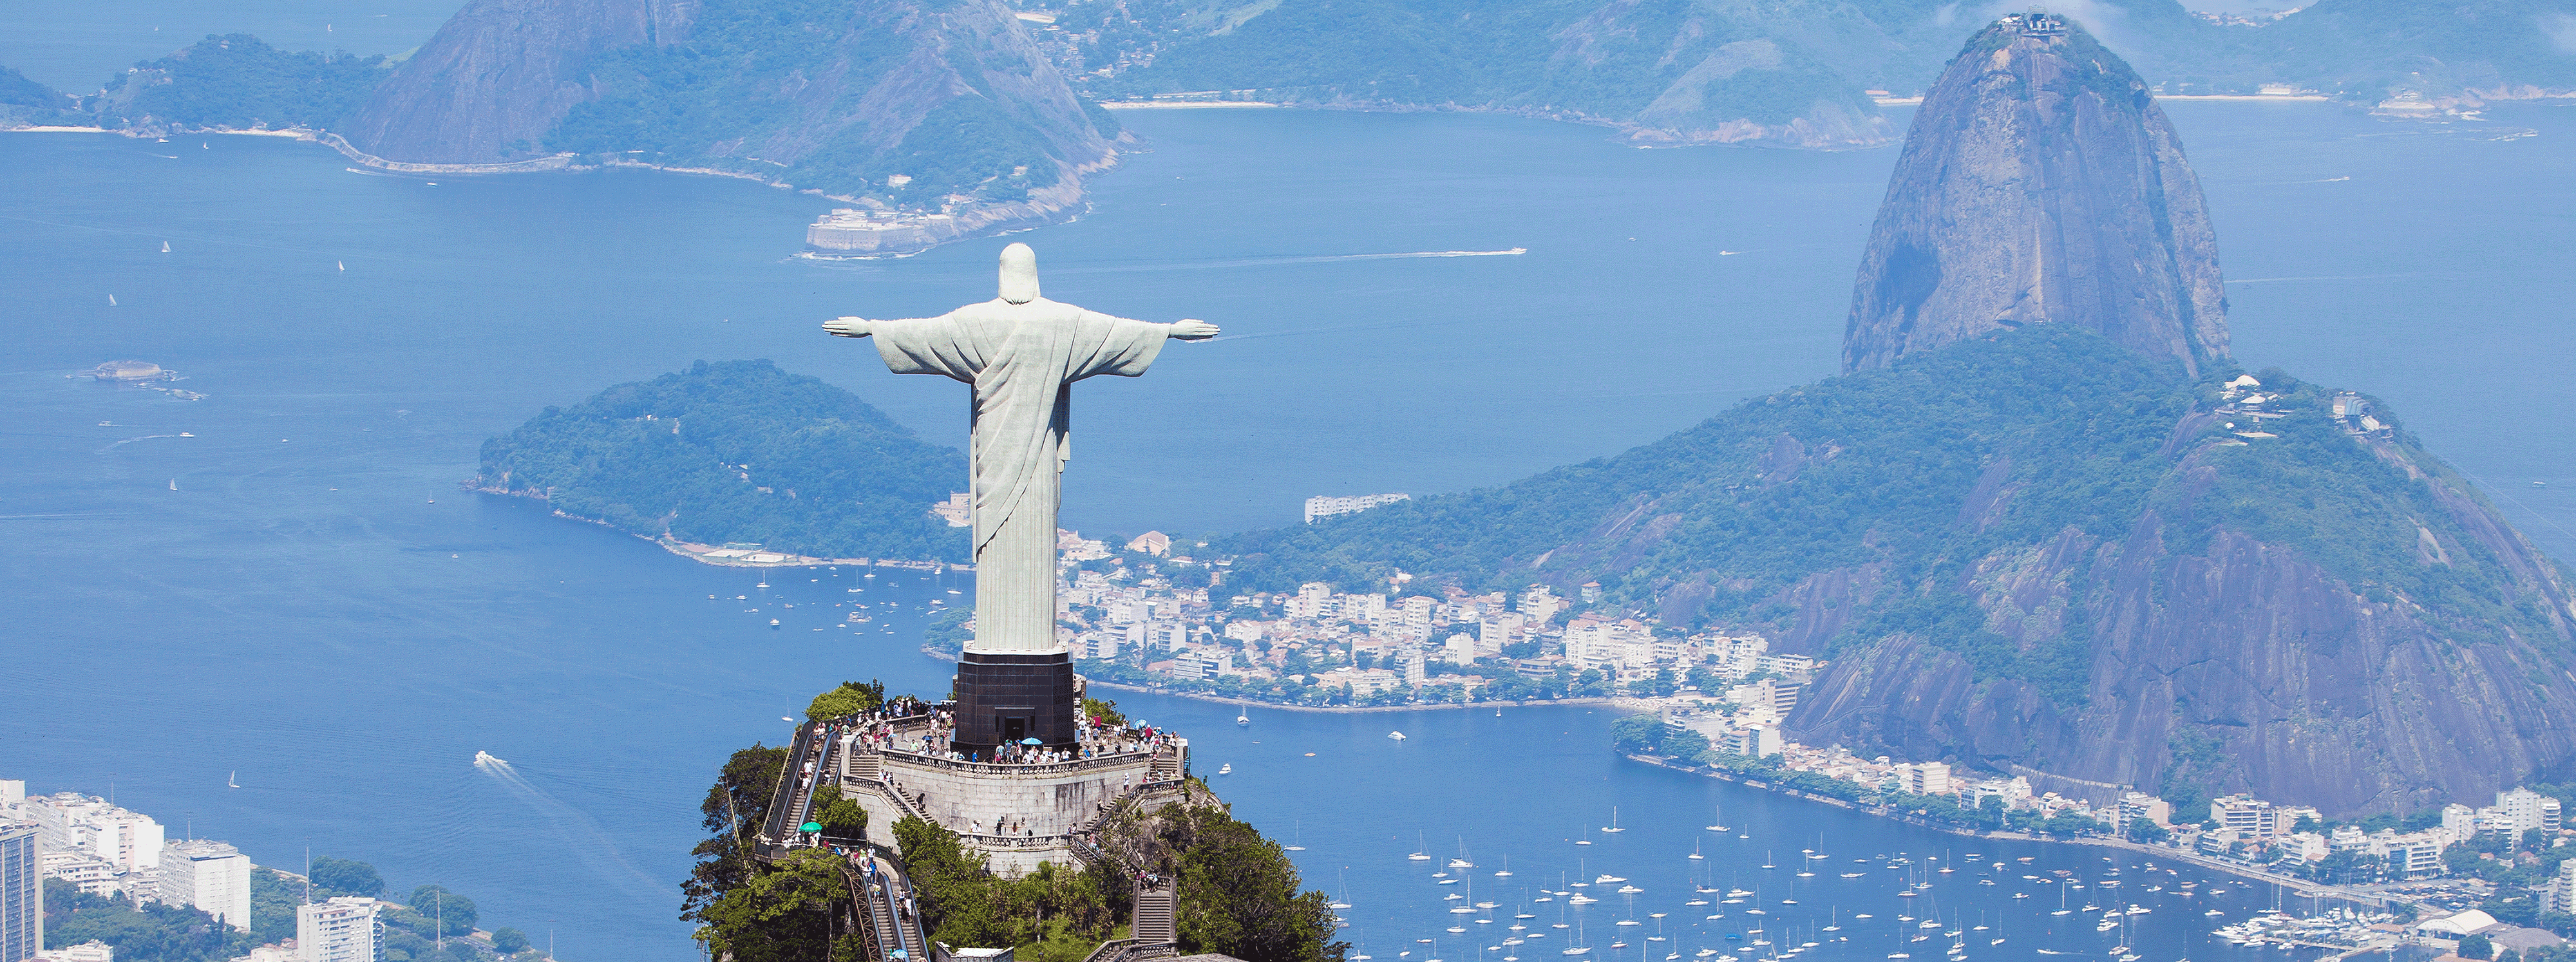 /resource/Images/southamerica/brazil/headerimage/Christ-the-Redeemer-Corcovado-Mountain-Rio-de-Janeiro.png